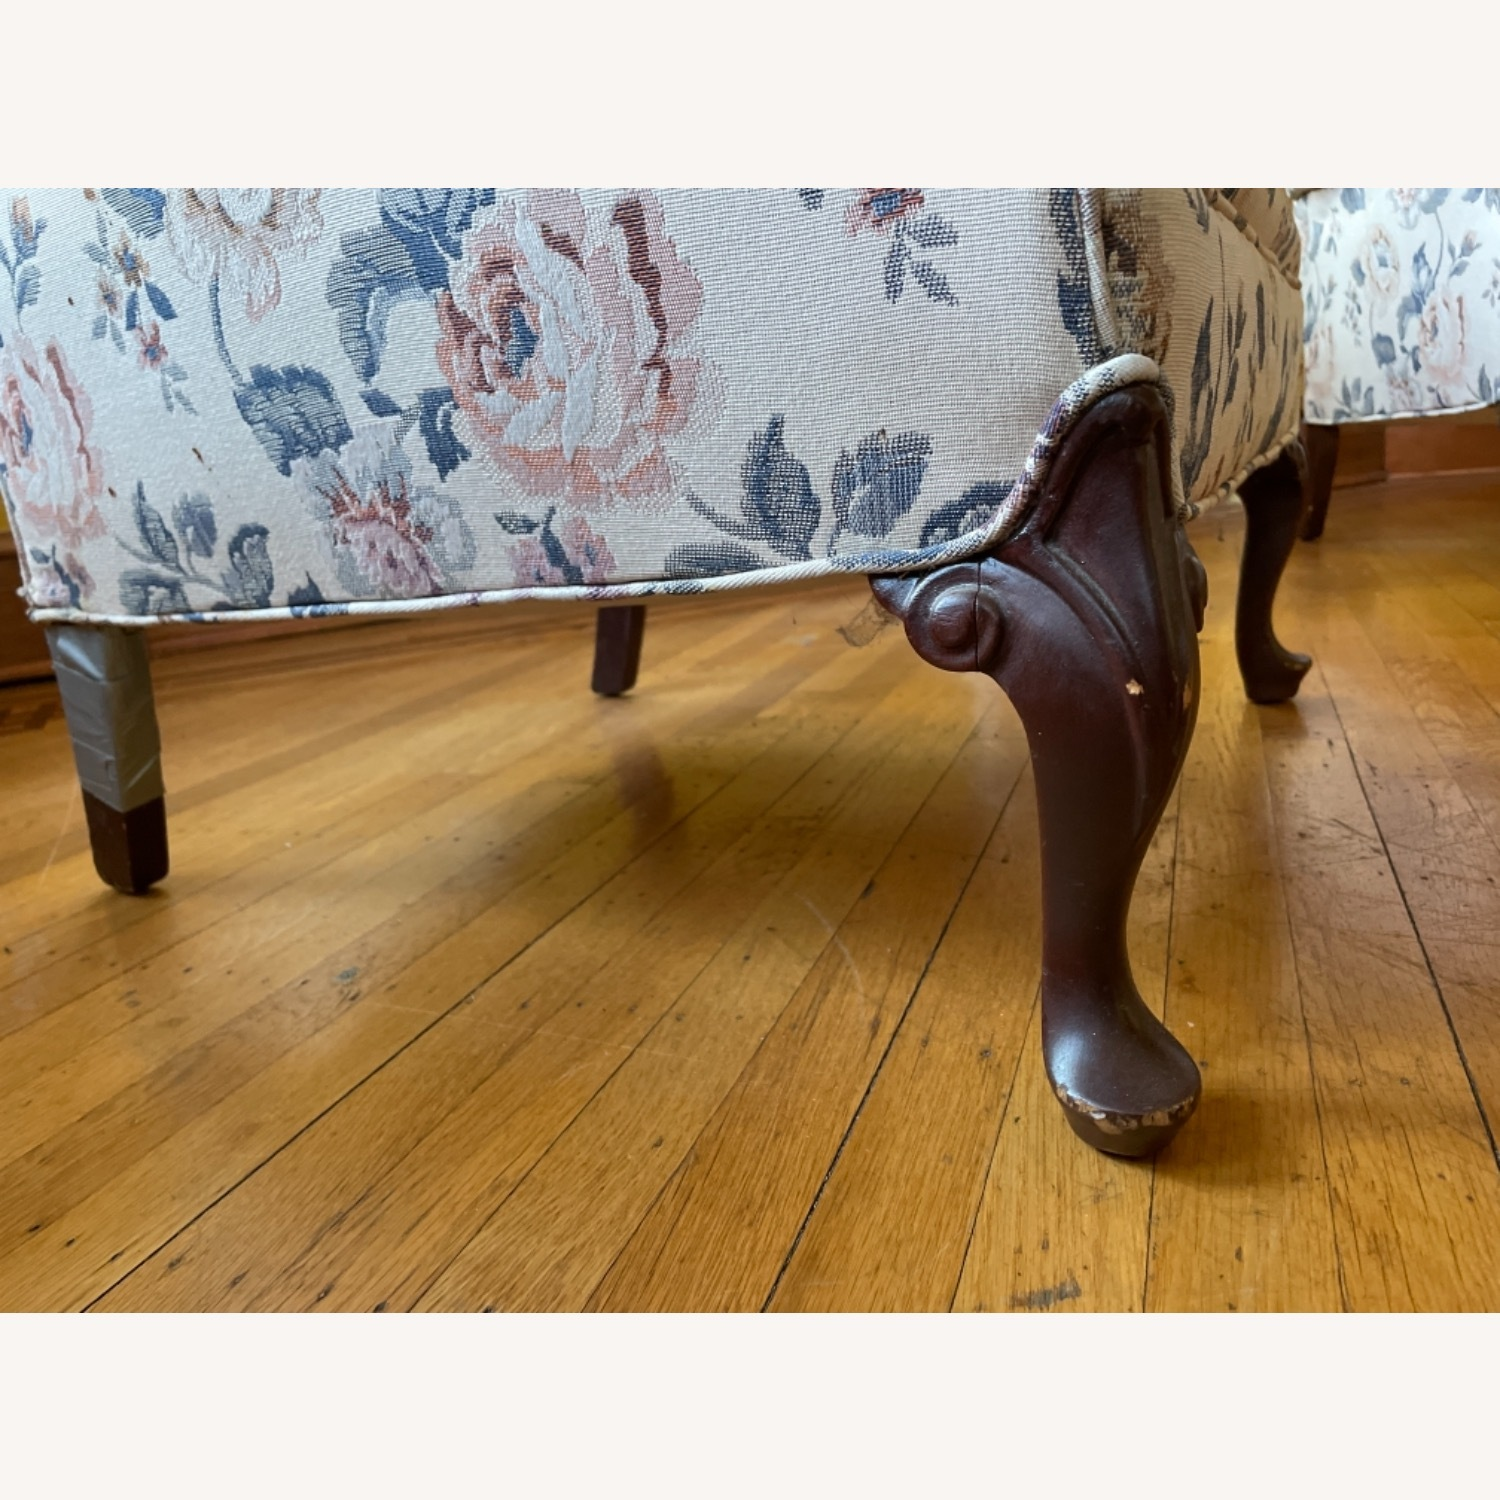 Matching Antique Arm Chairs - image-5